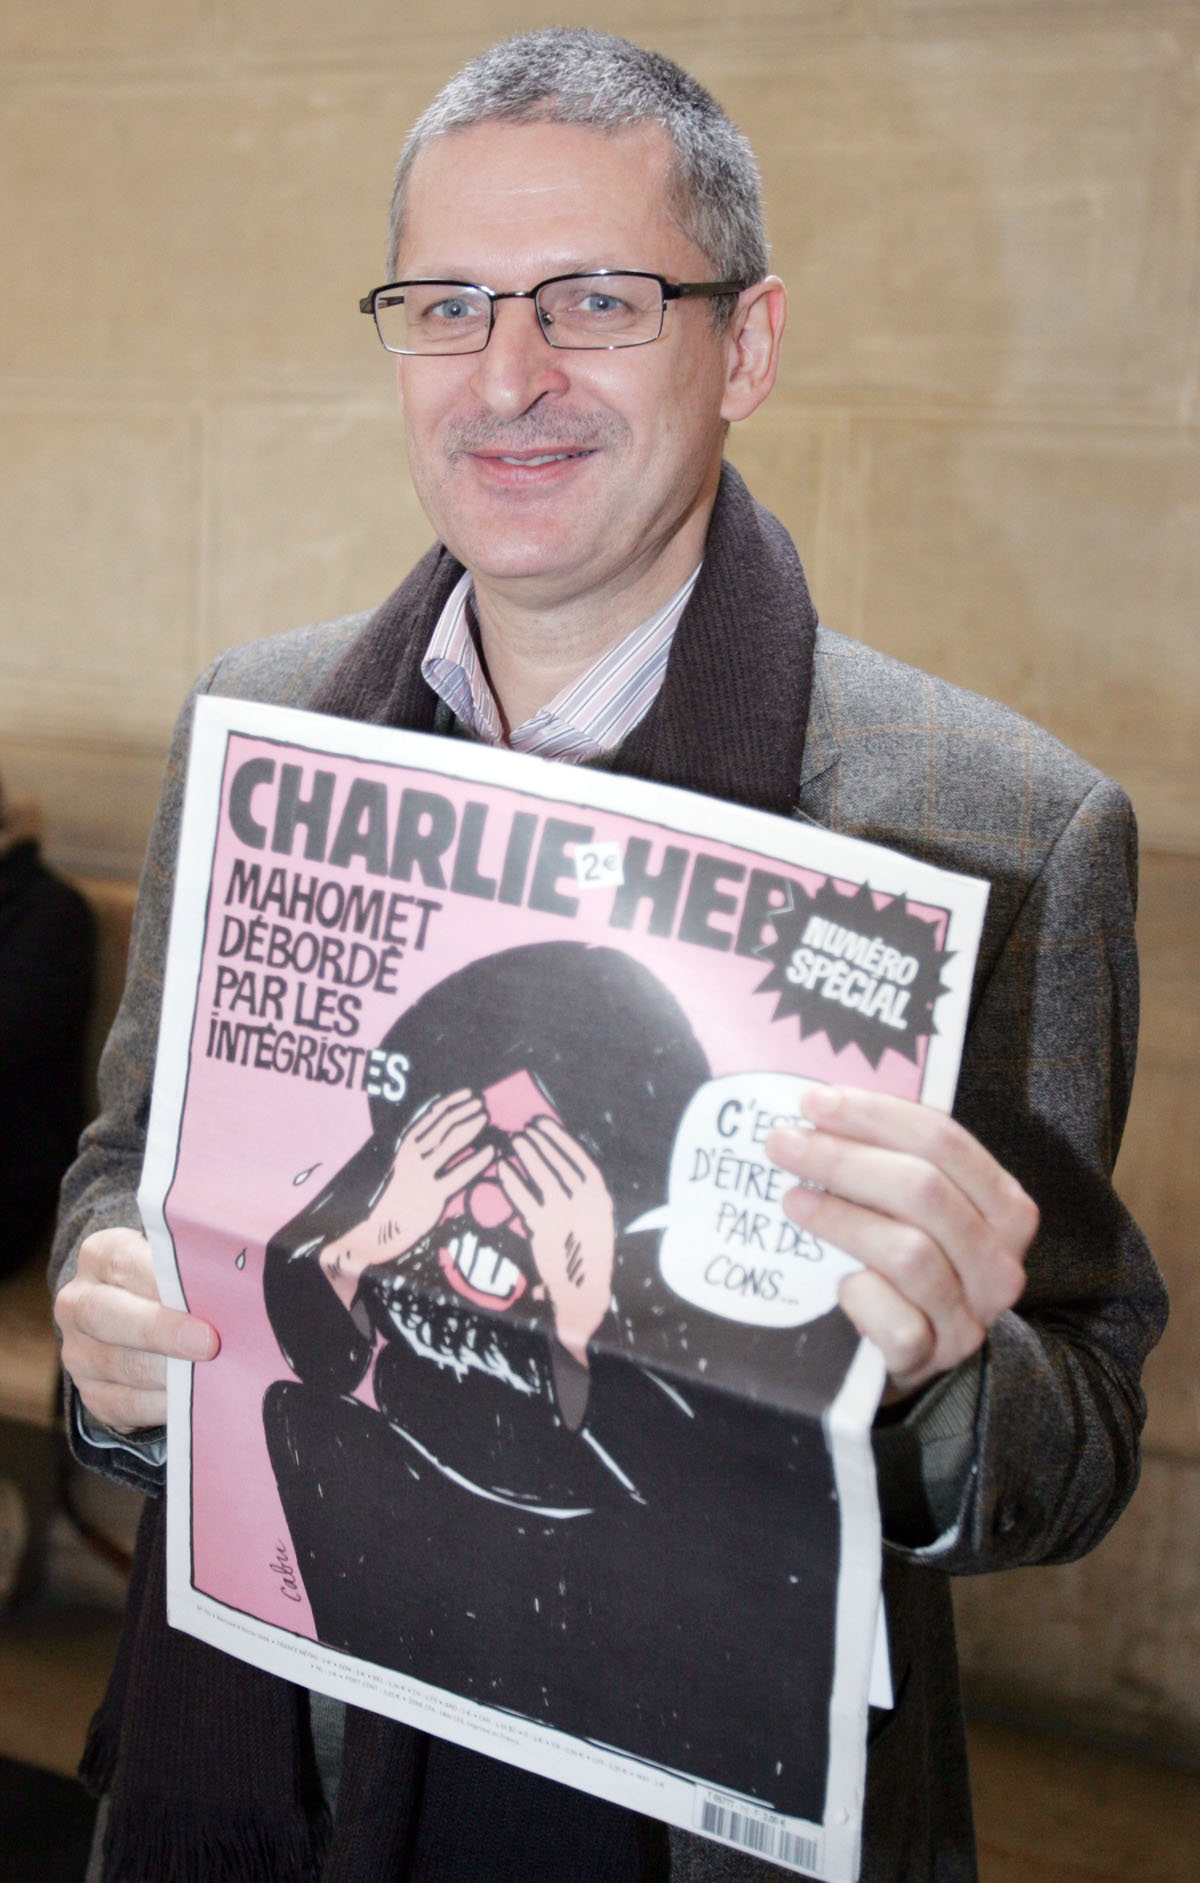 Culture editor of the Danish newspaper Jyllands-Posten, Fleming Rose shows French satirical weekly Charlie Hebdo 07 February 2007 at the Paris court to attend the trial of French satirical weekly Charlie Hebdo chief editor Philippe Val trial on the case b